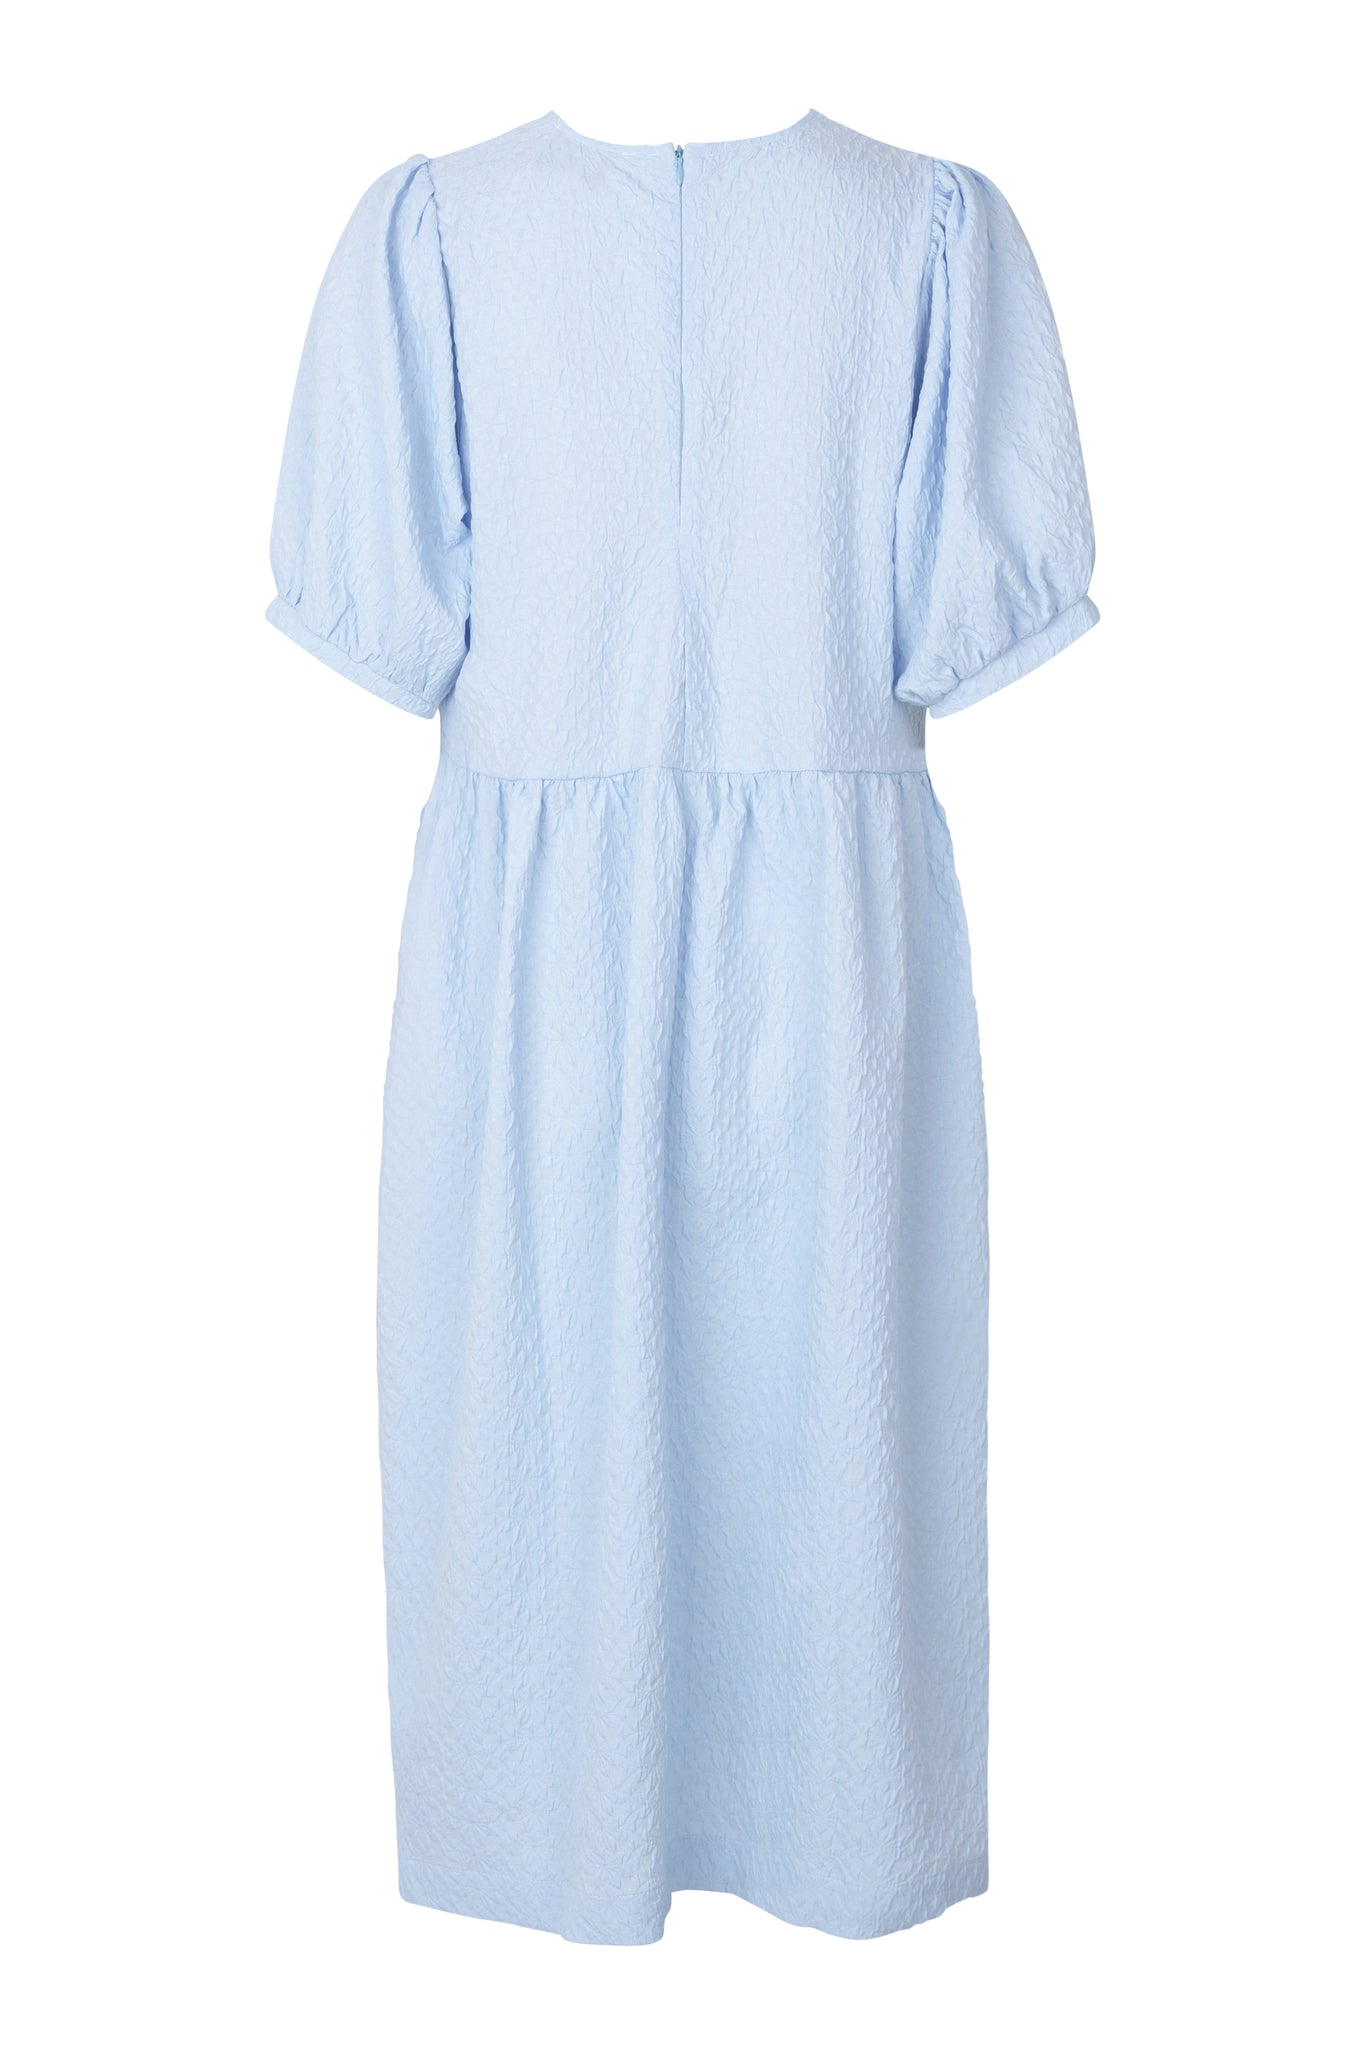 LEAH DRESS - BRUNNERA BLUE